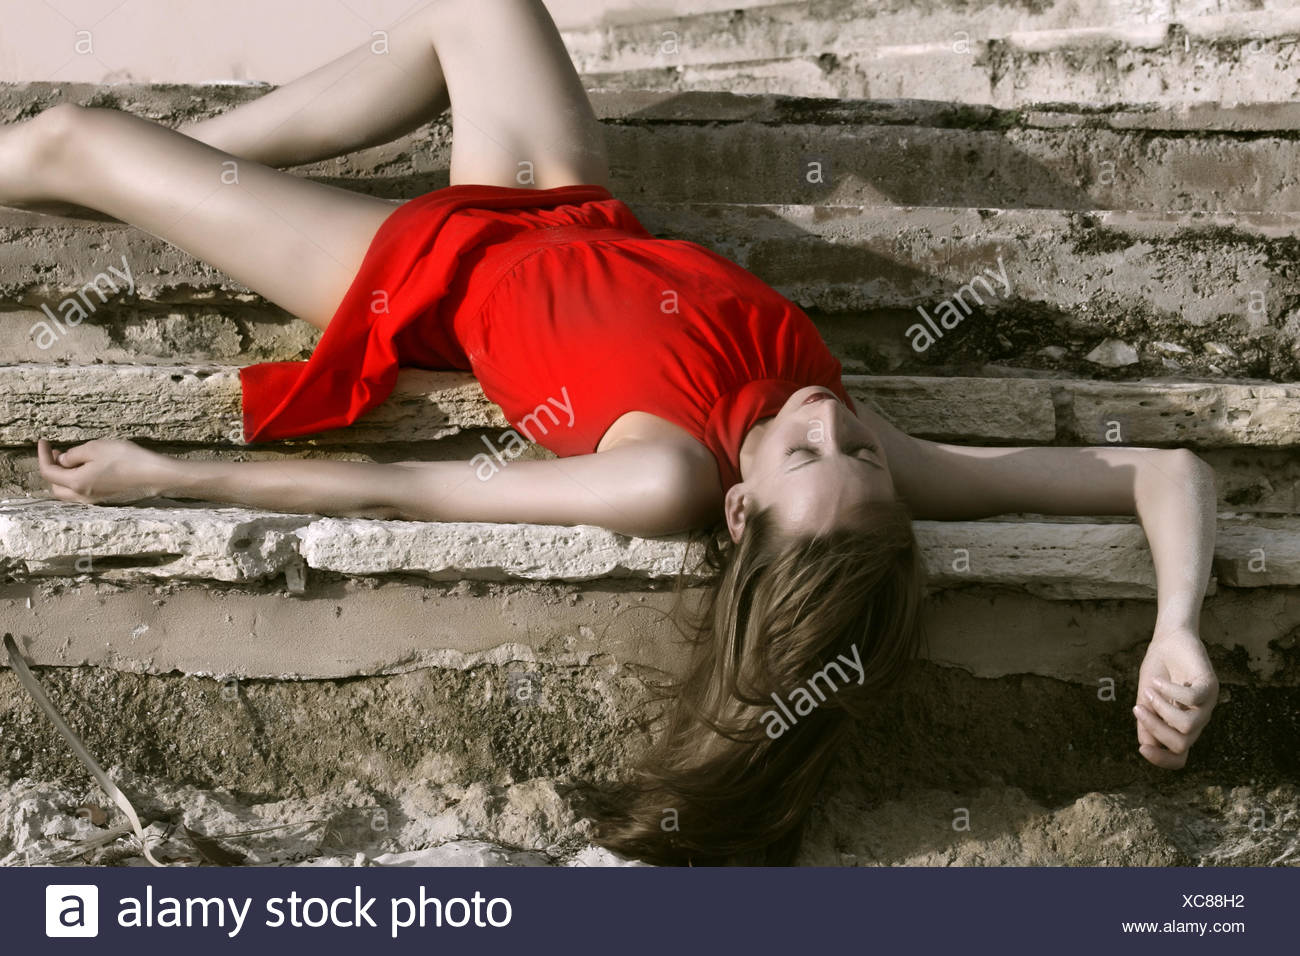 motionless on the steps - Stock Image